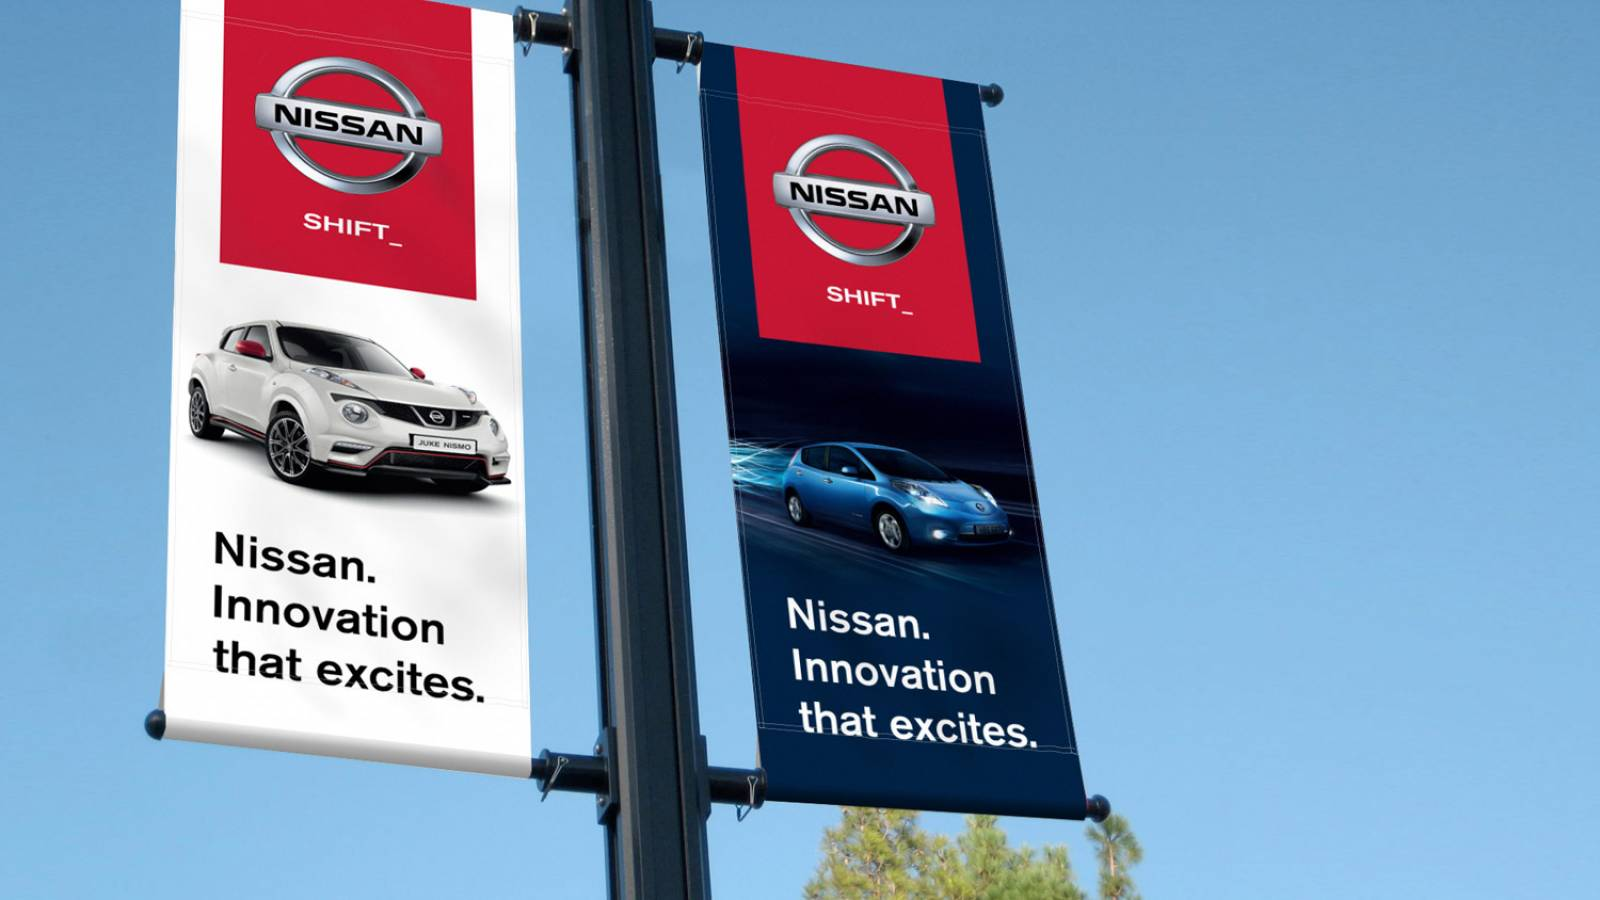 Nissan-poster-banners-design-agency-graphic-design-canterbury.jpg